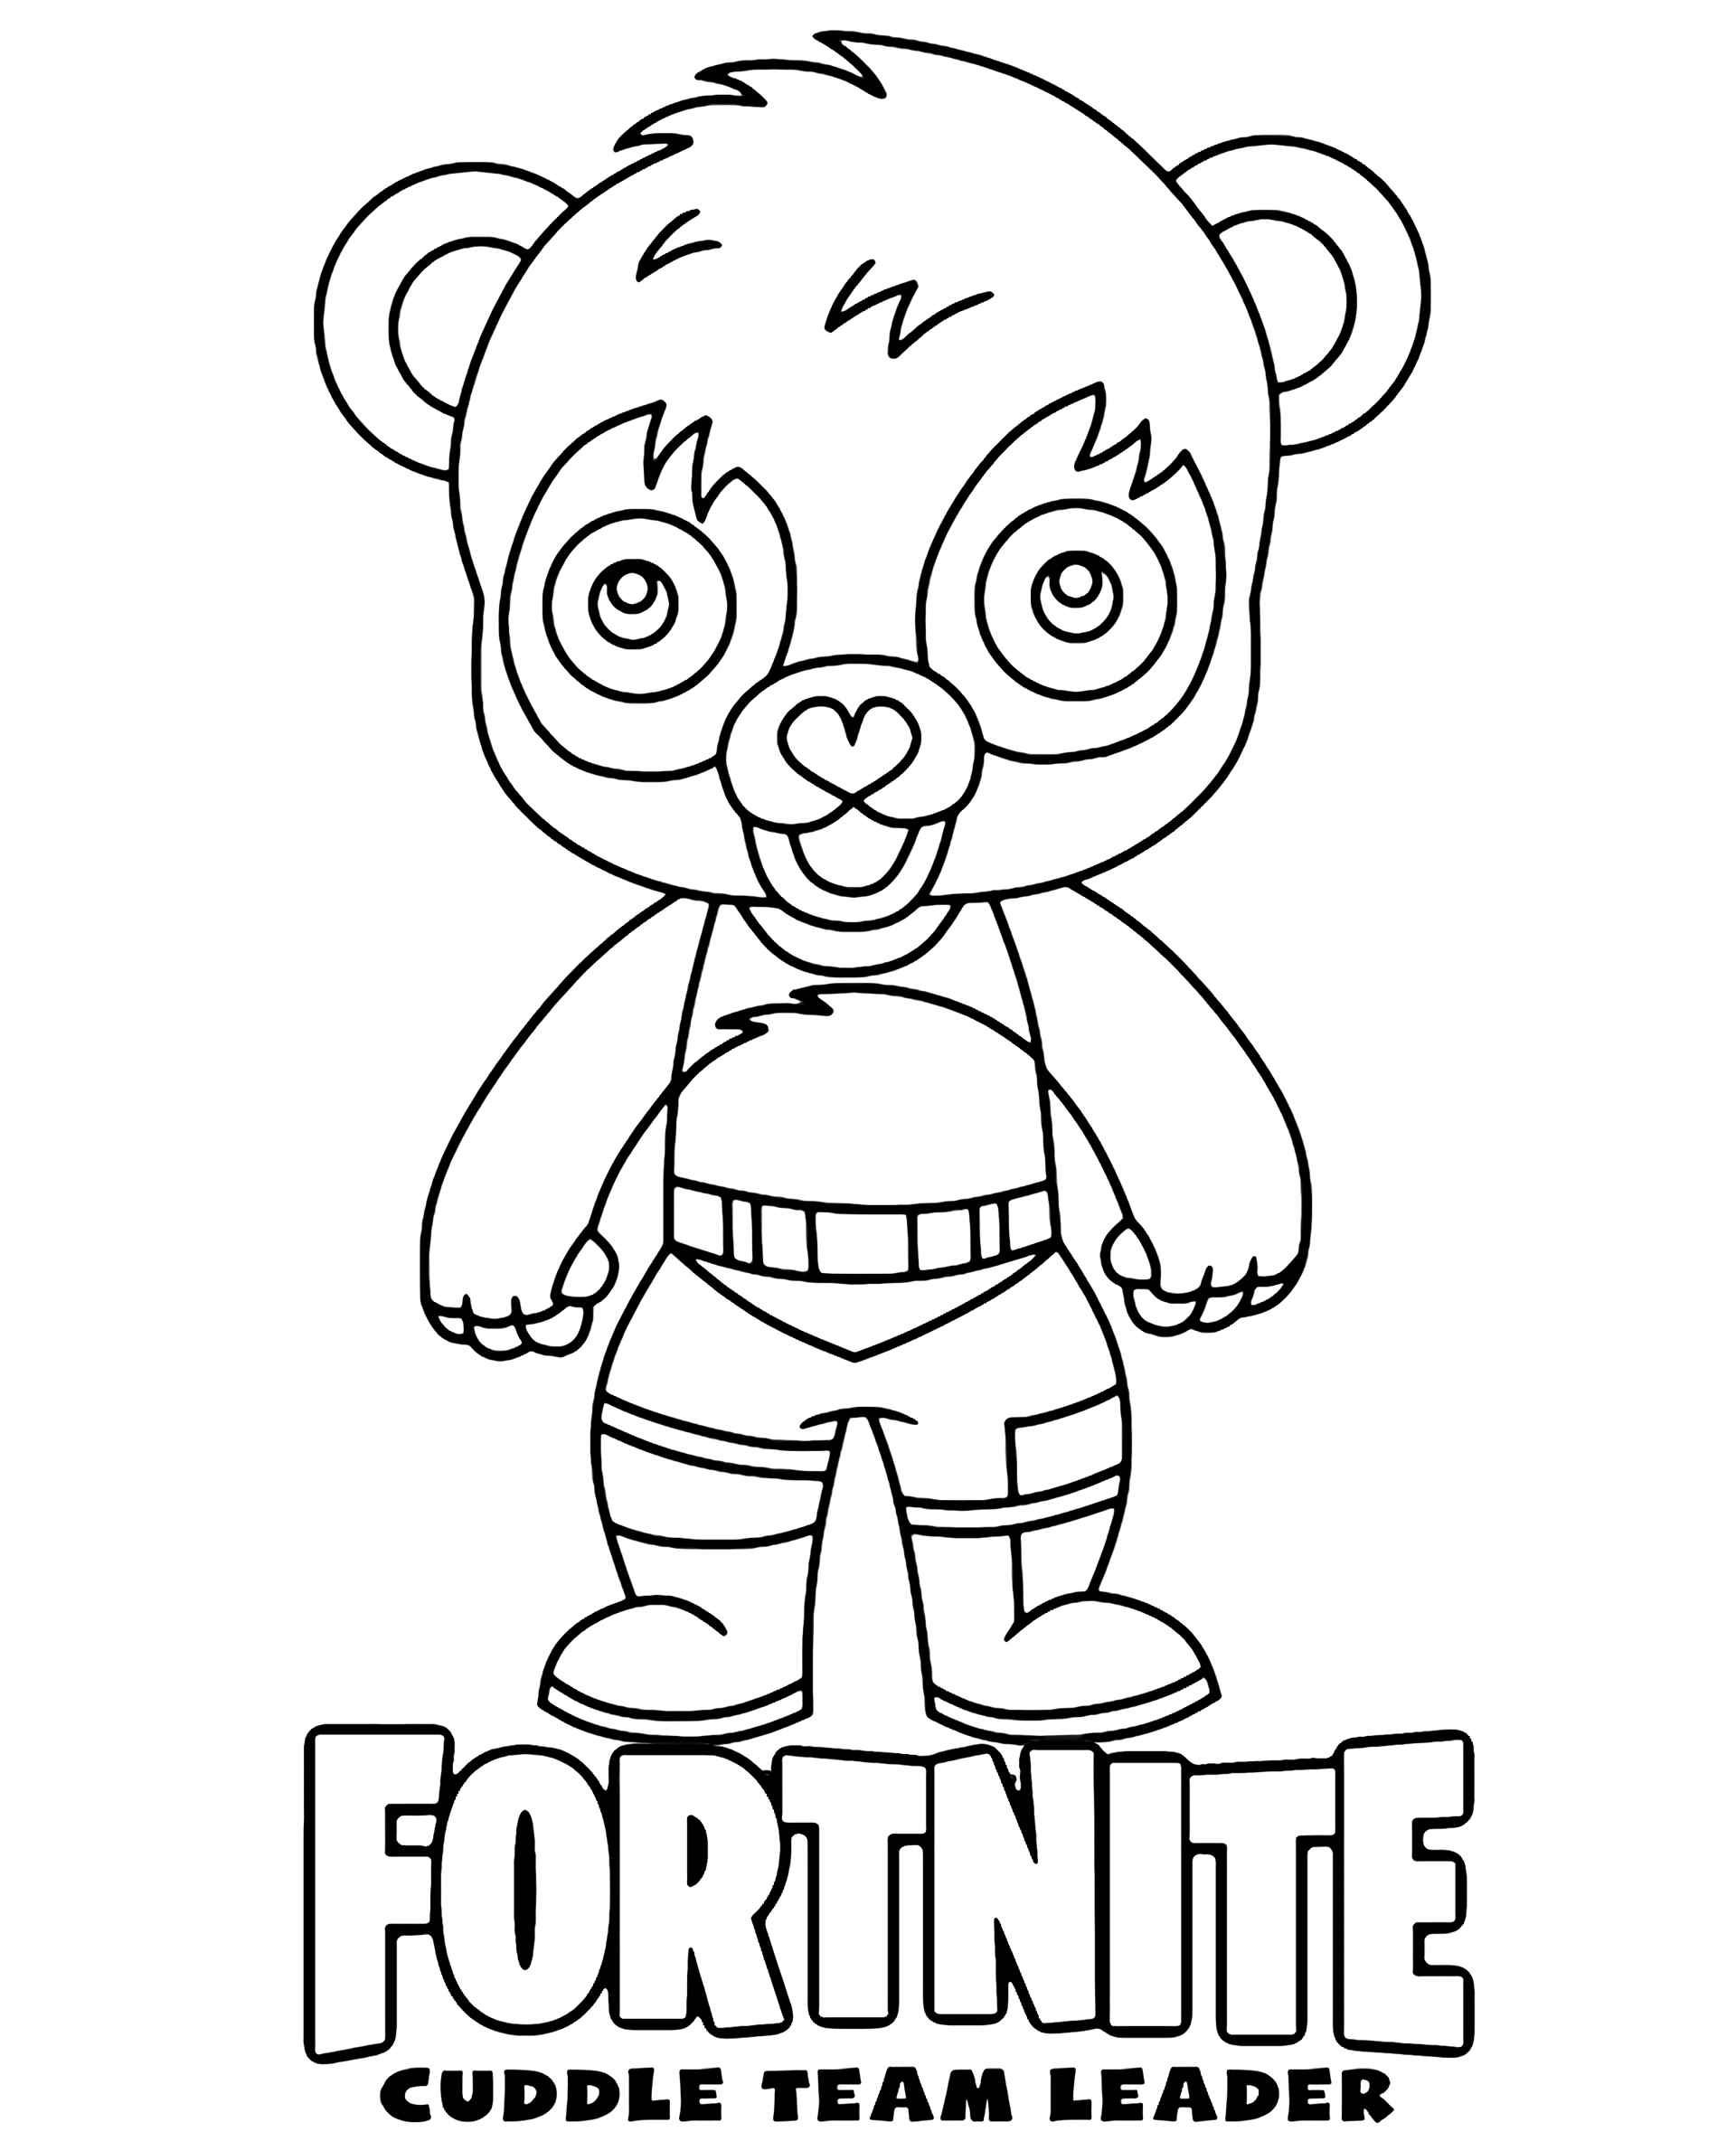 Coloring Page Of The Cuddle Team Leader Chibi Skin From The Game Fortnite